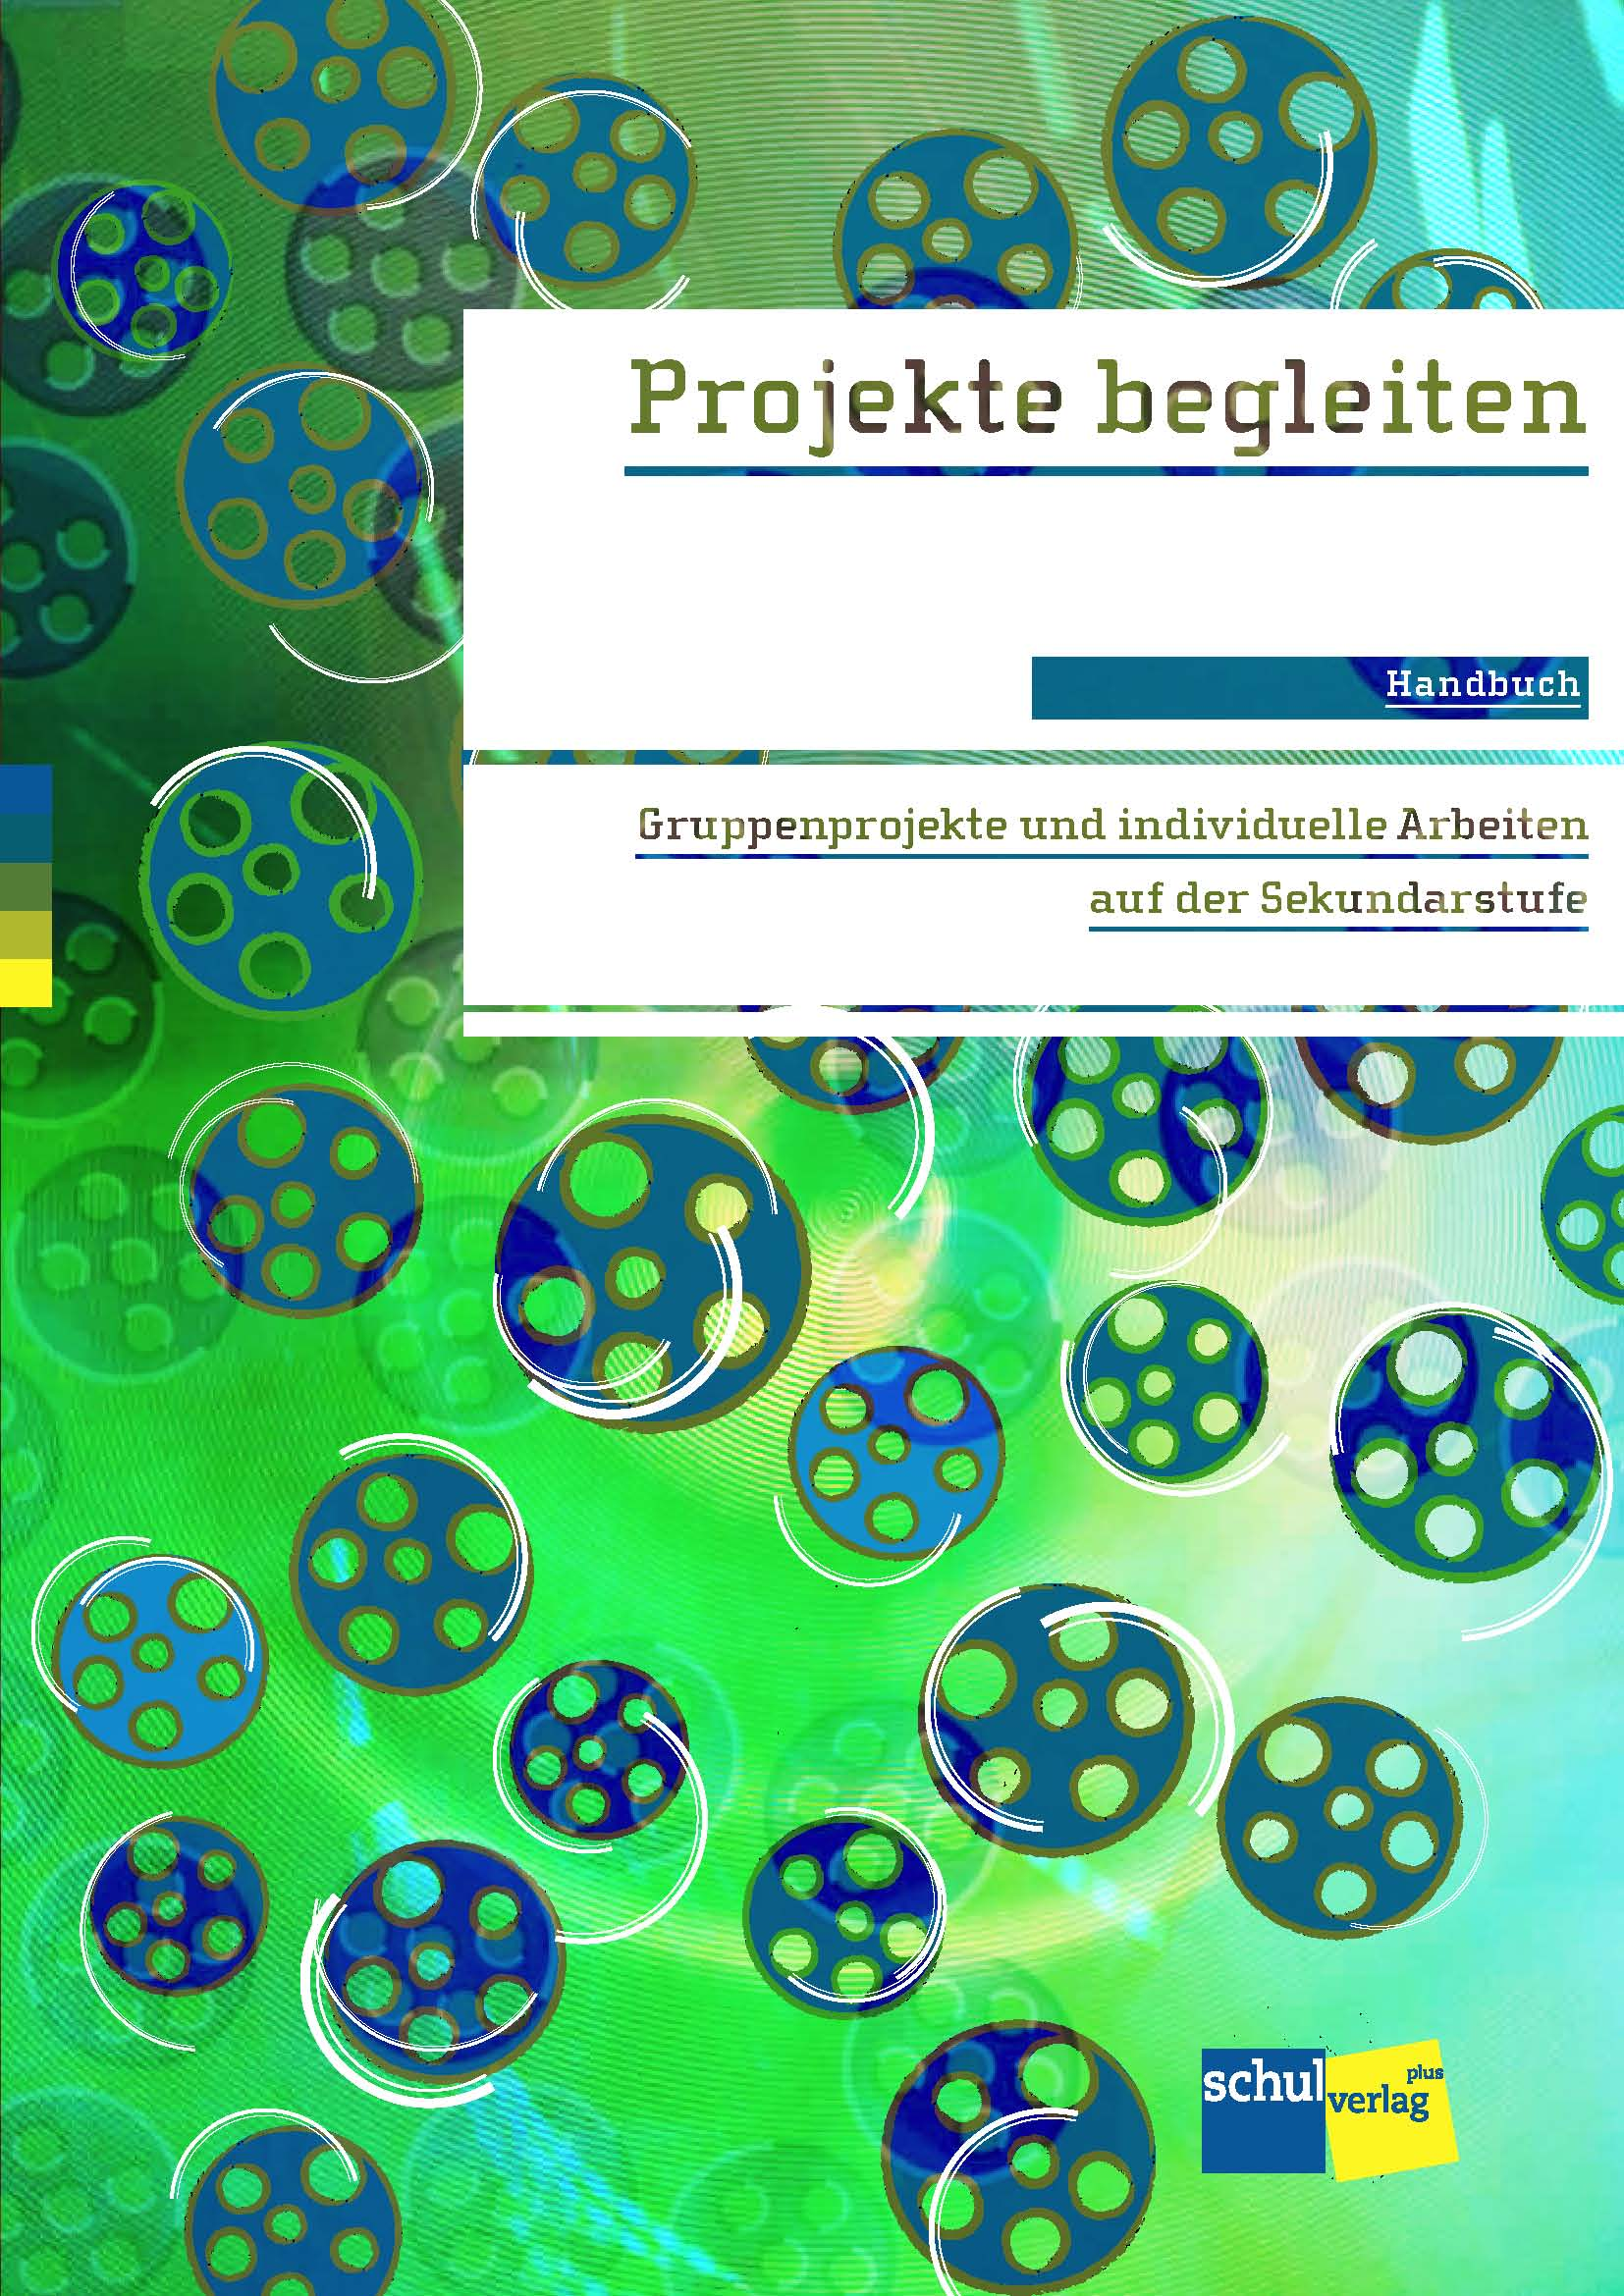 Preview image for LOM object Handbuch Projekte begleiten